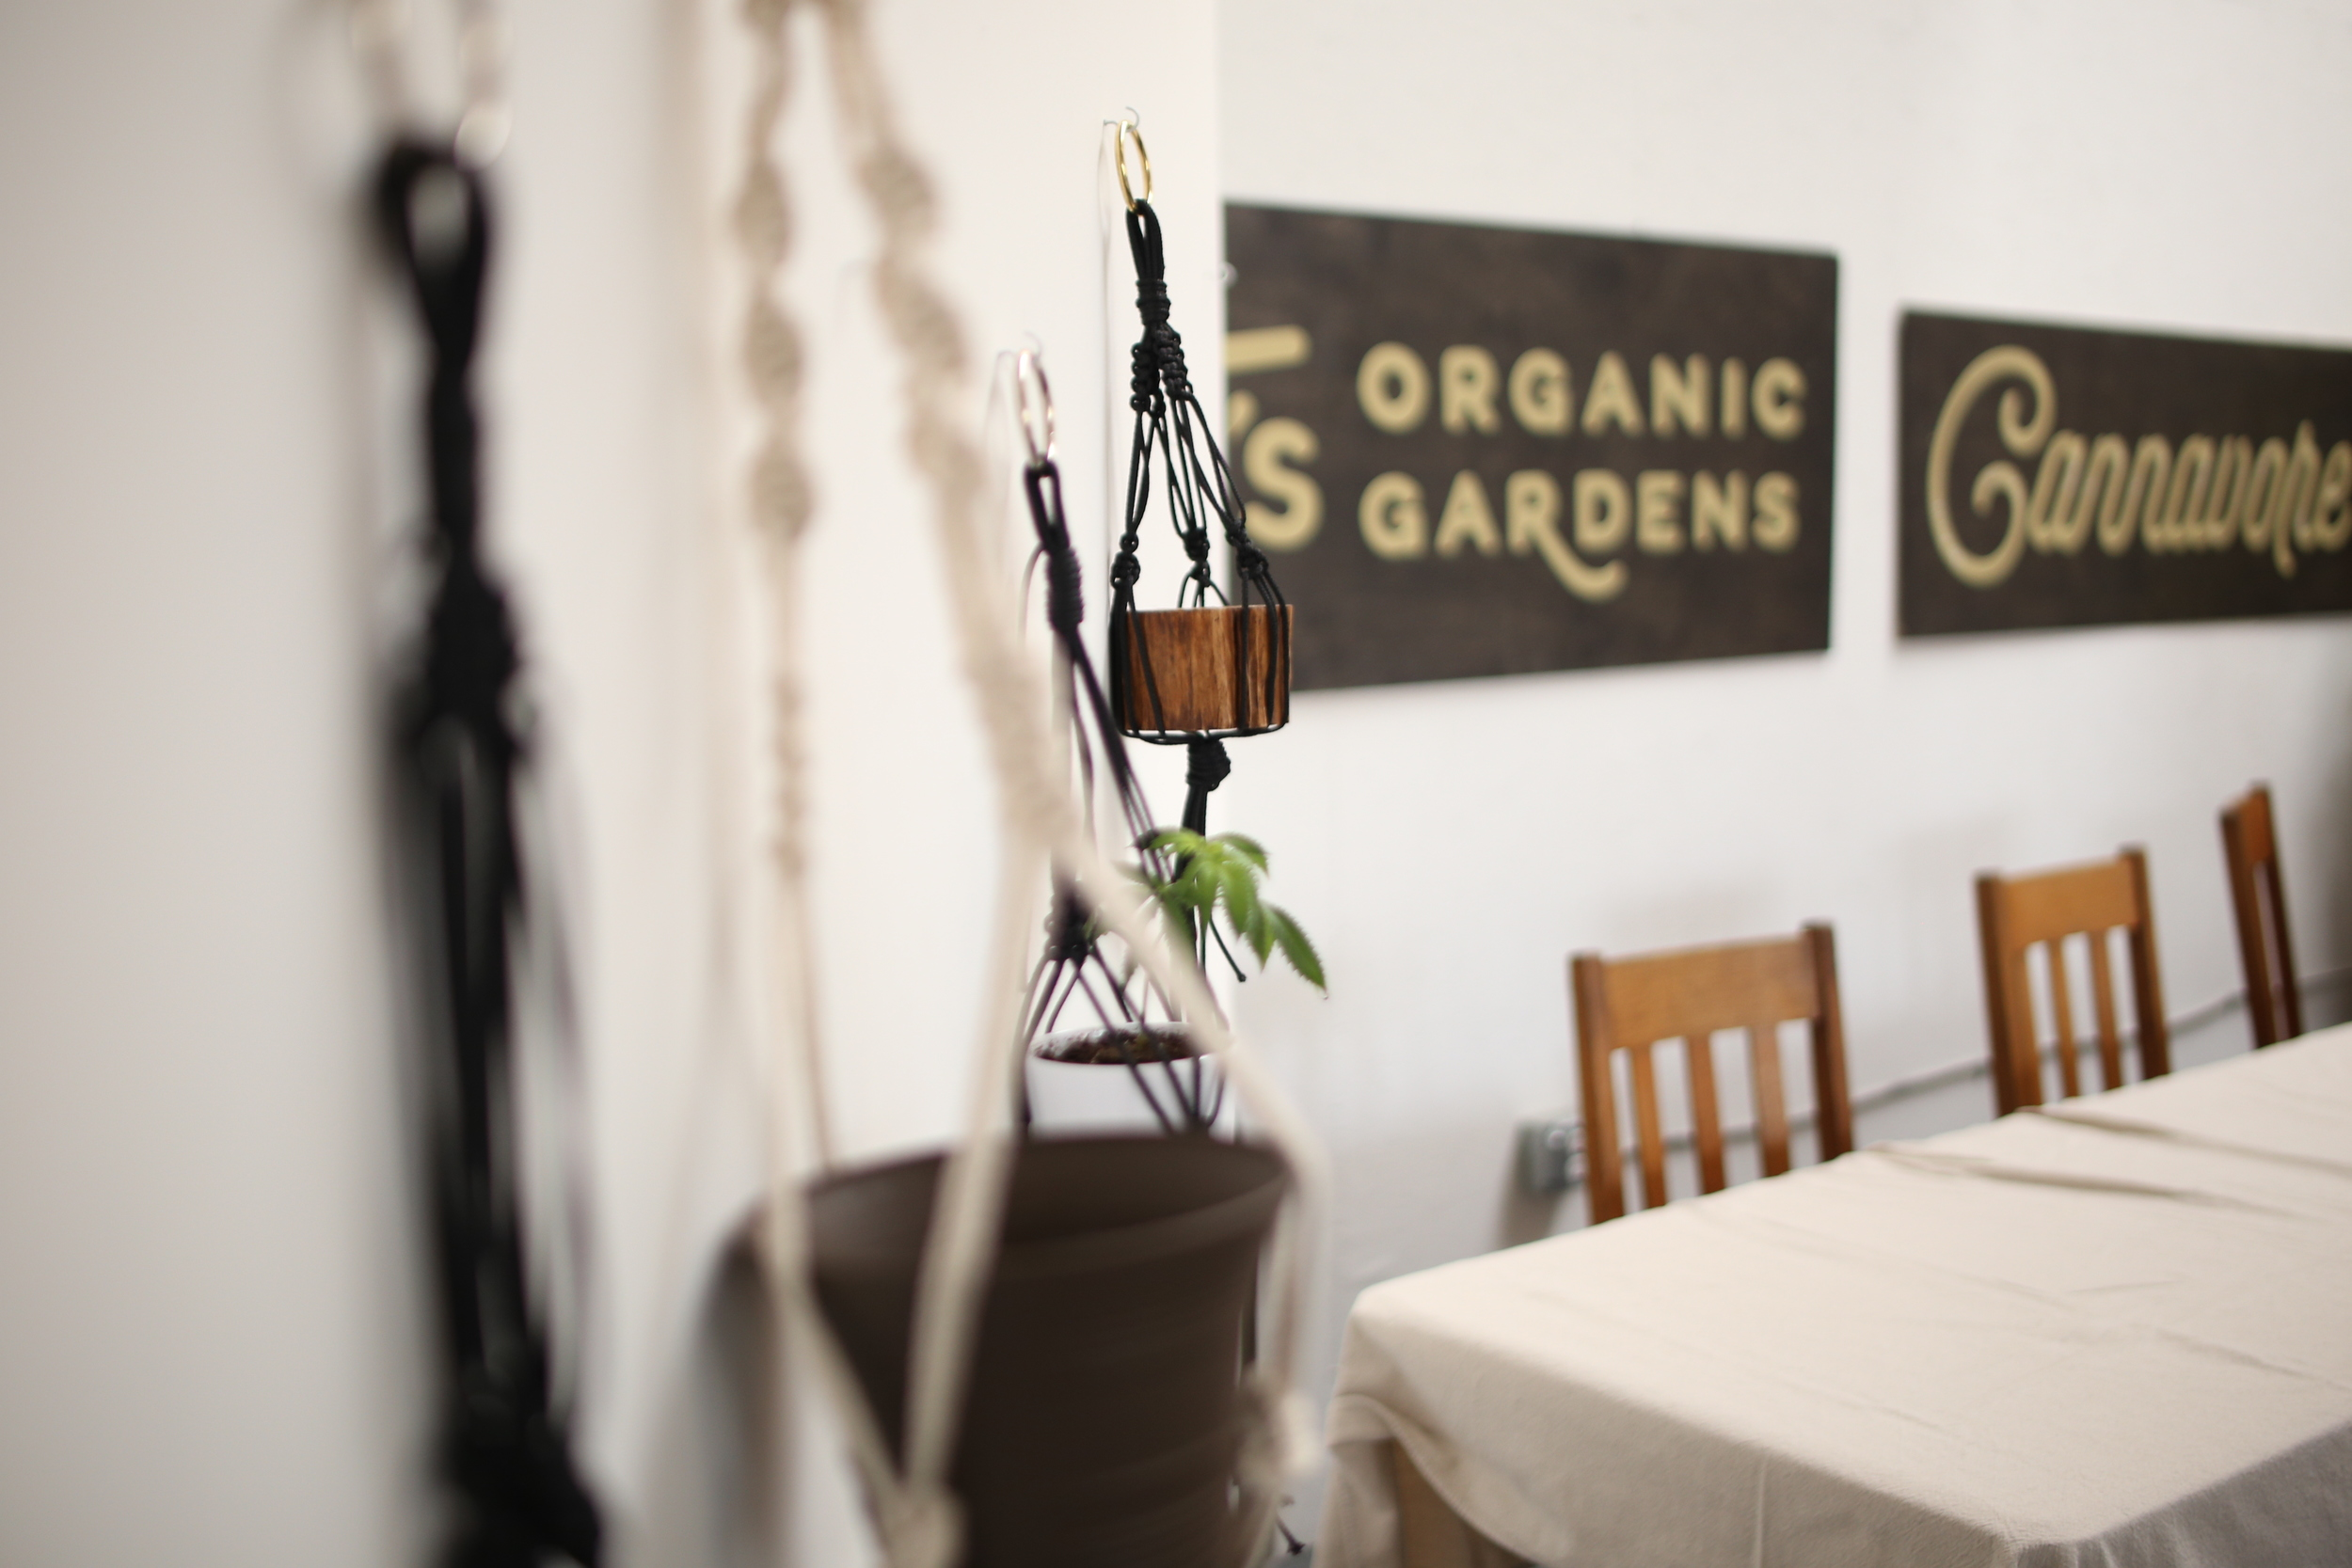 TJ's Organic Gardens and Cannavore at Make & Mary.